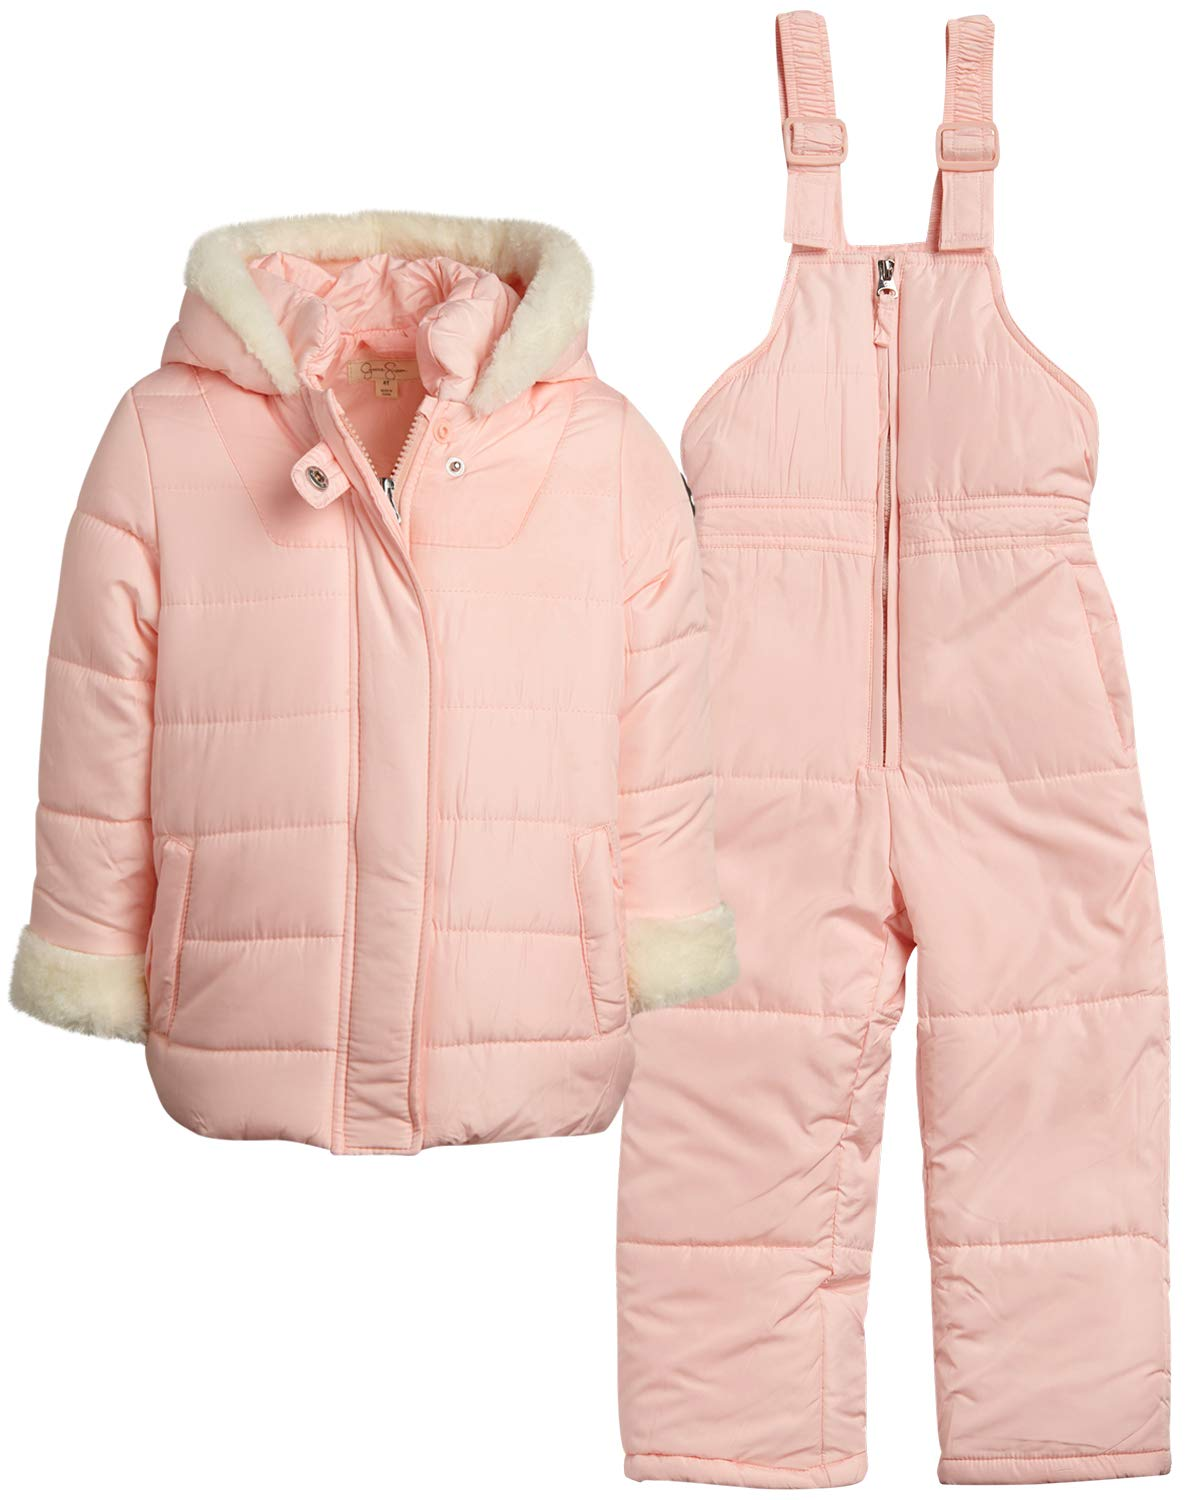 Jessica Simpson Baby Girls' 2-Piece Snowset with Snow Bib Pants and Coat, Size 24 Months, Blush' by Jessica Simpson